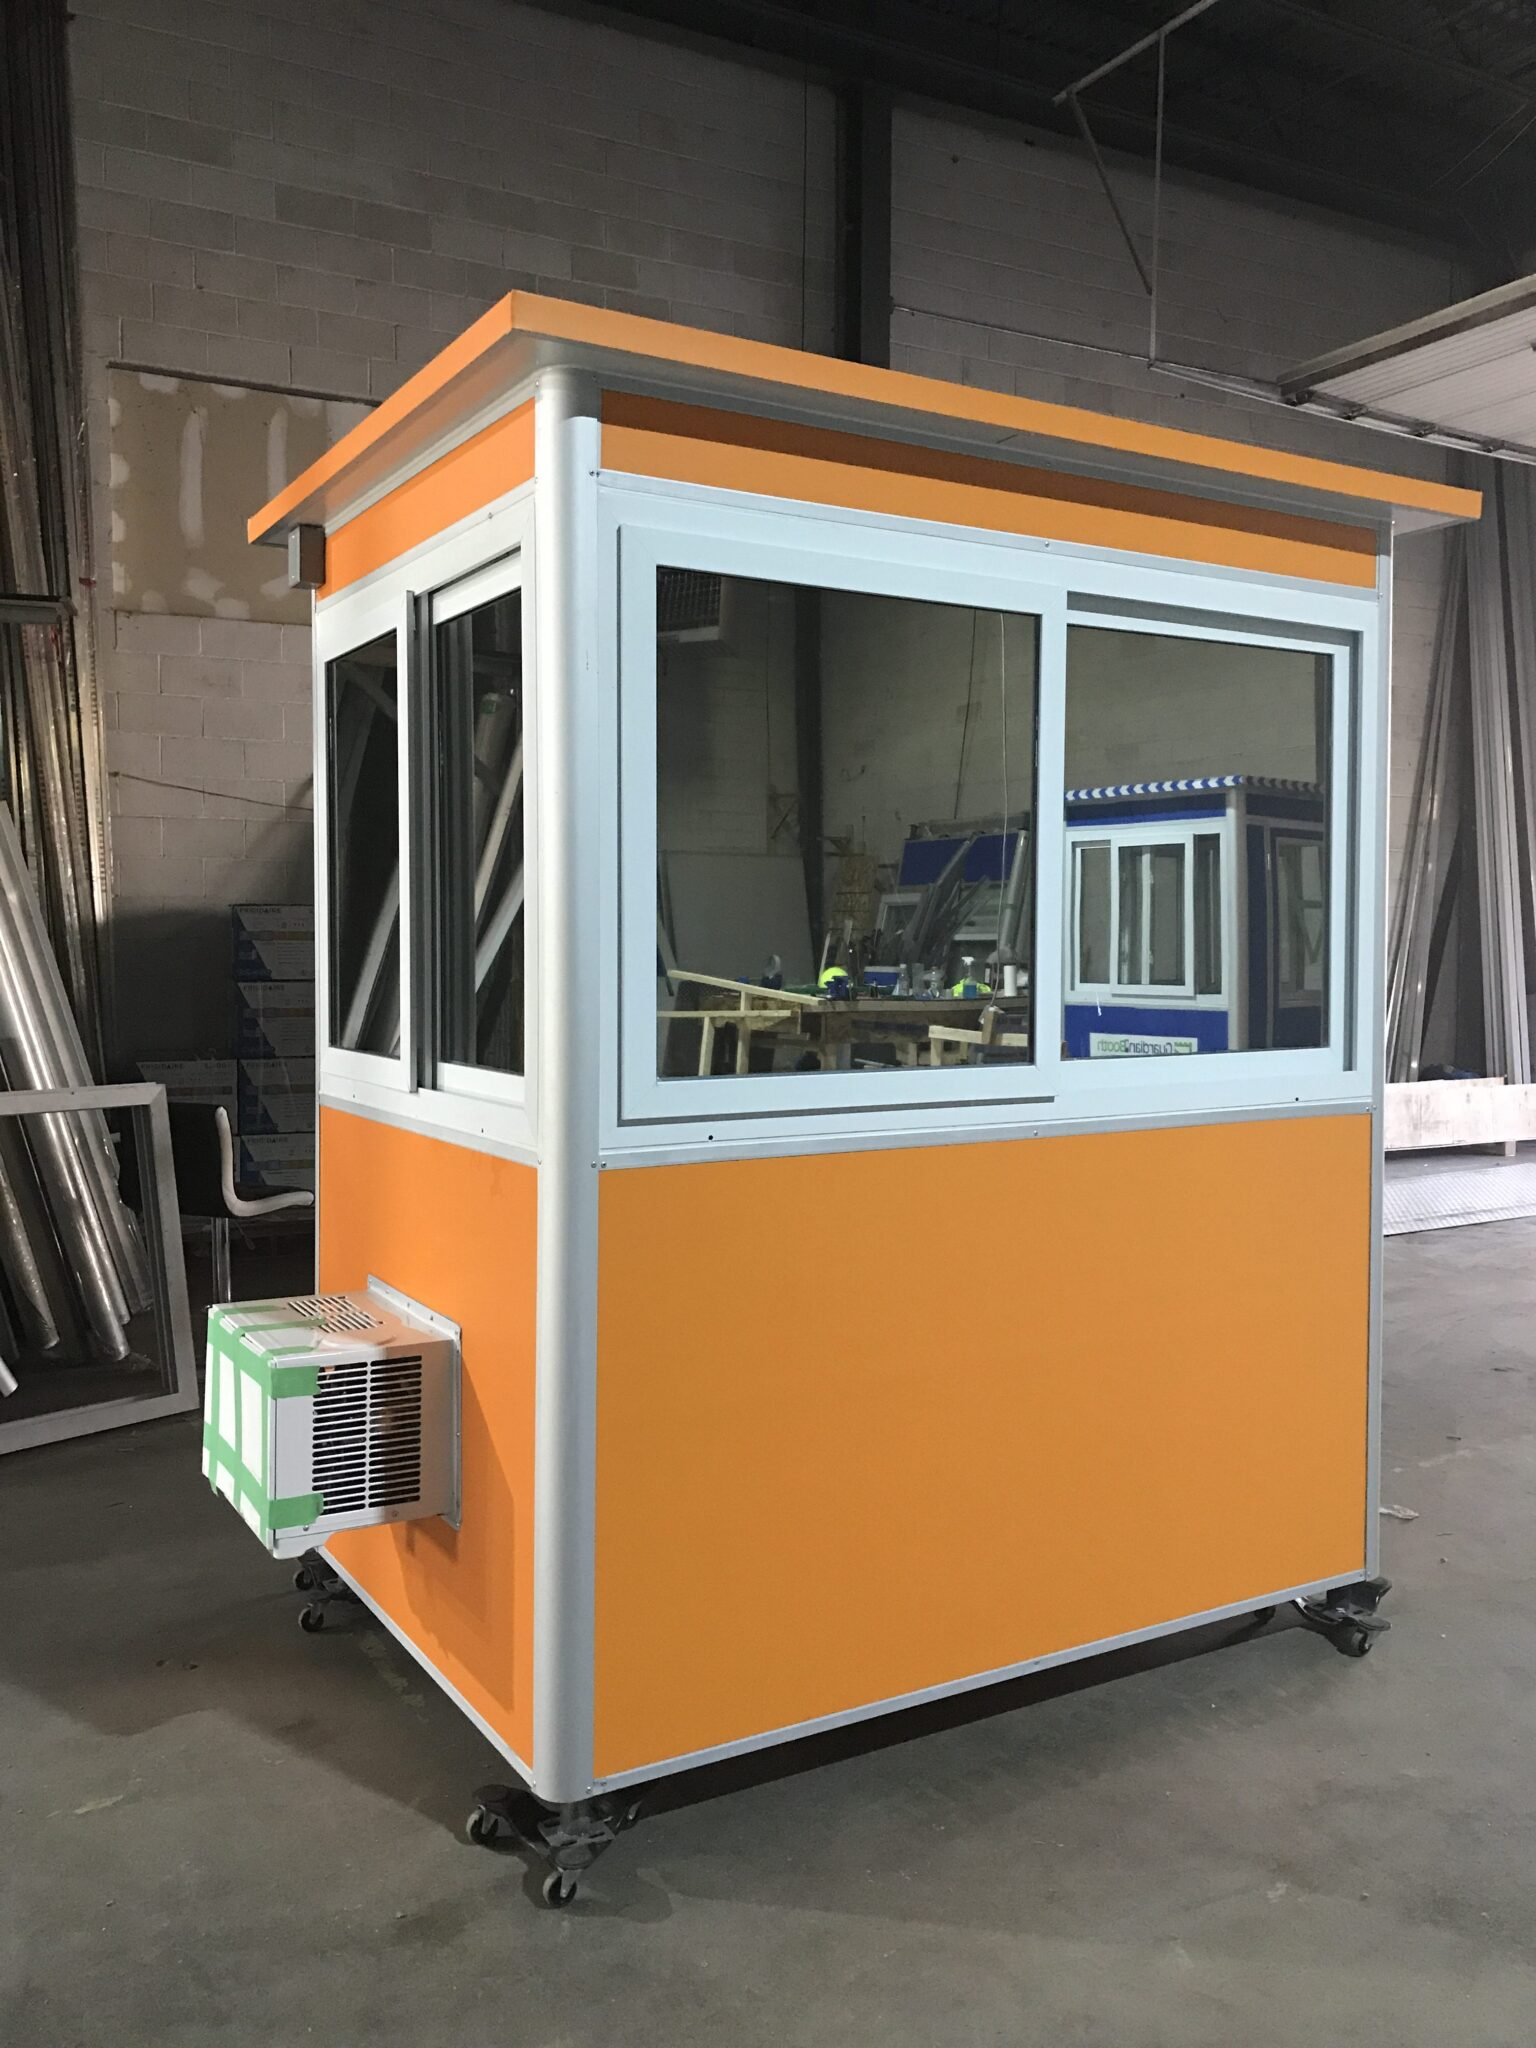 4x6 Security Guard Booth in Allentown, PA with Custom Exterior Color, Tinted Window, Built-in AC, Baseboard Heater, Electric Disconnect Switch